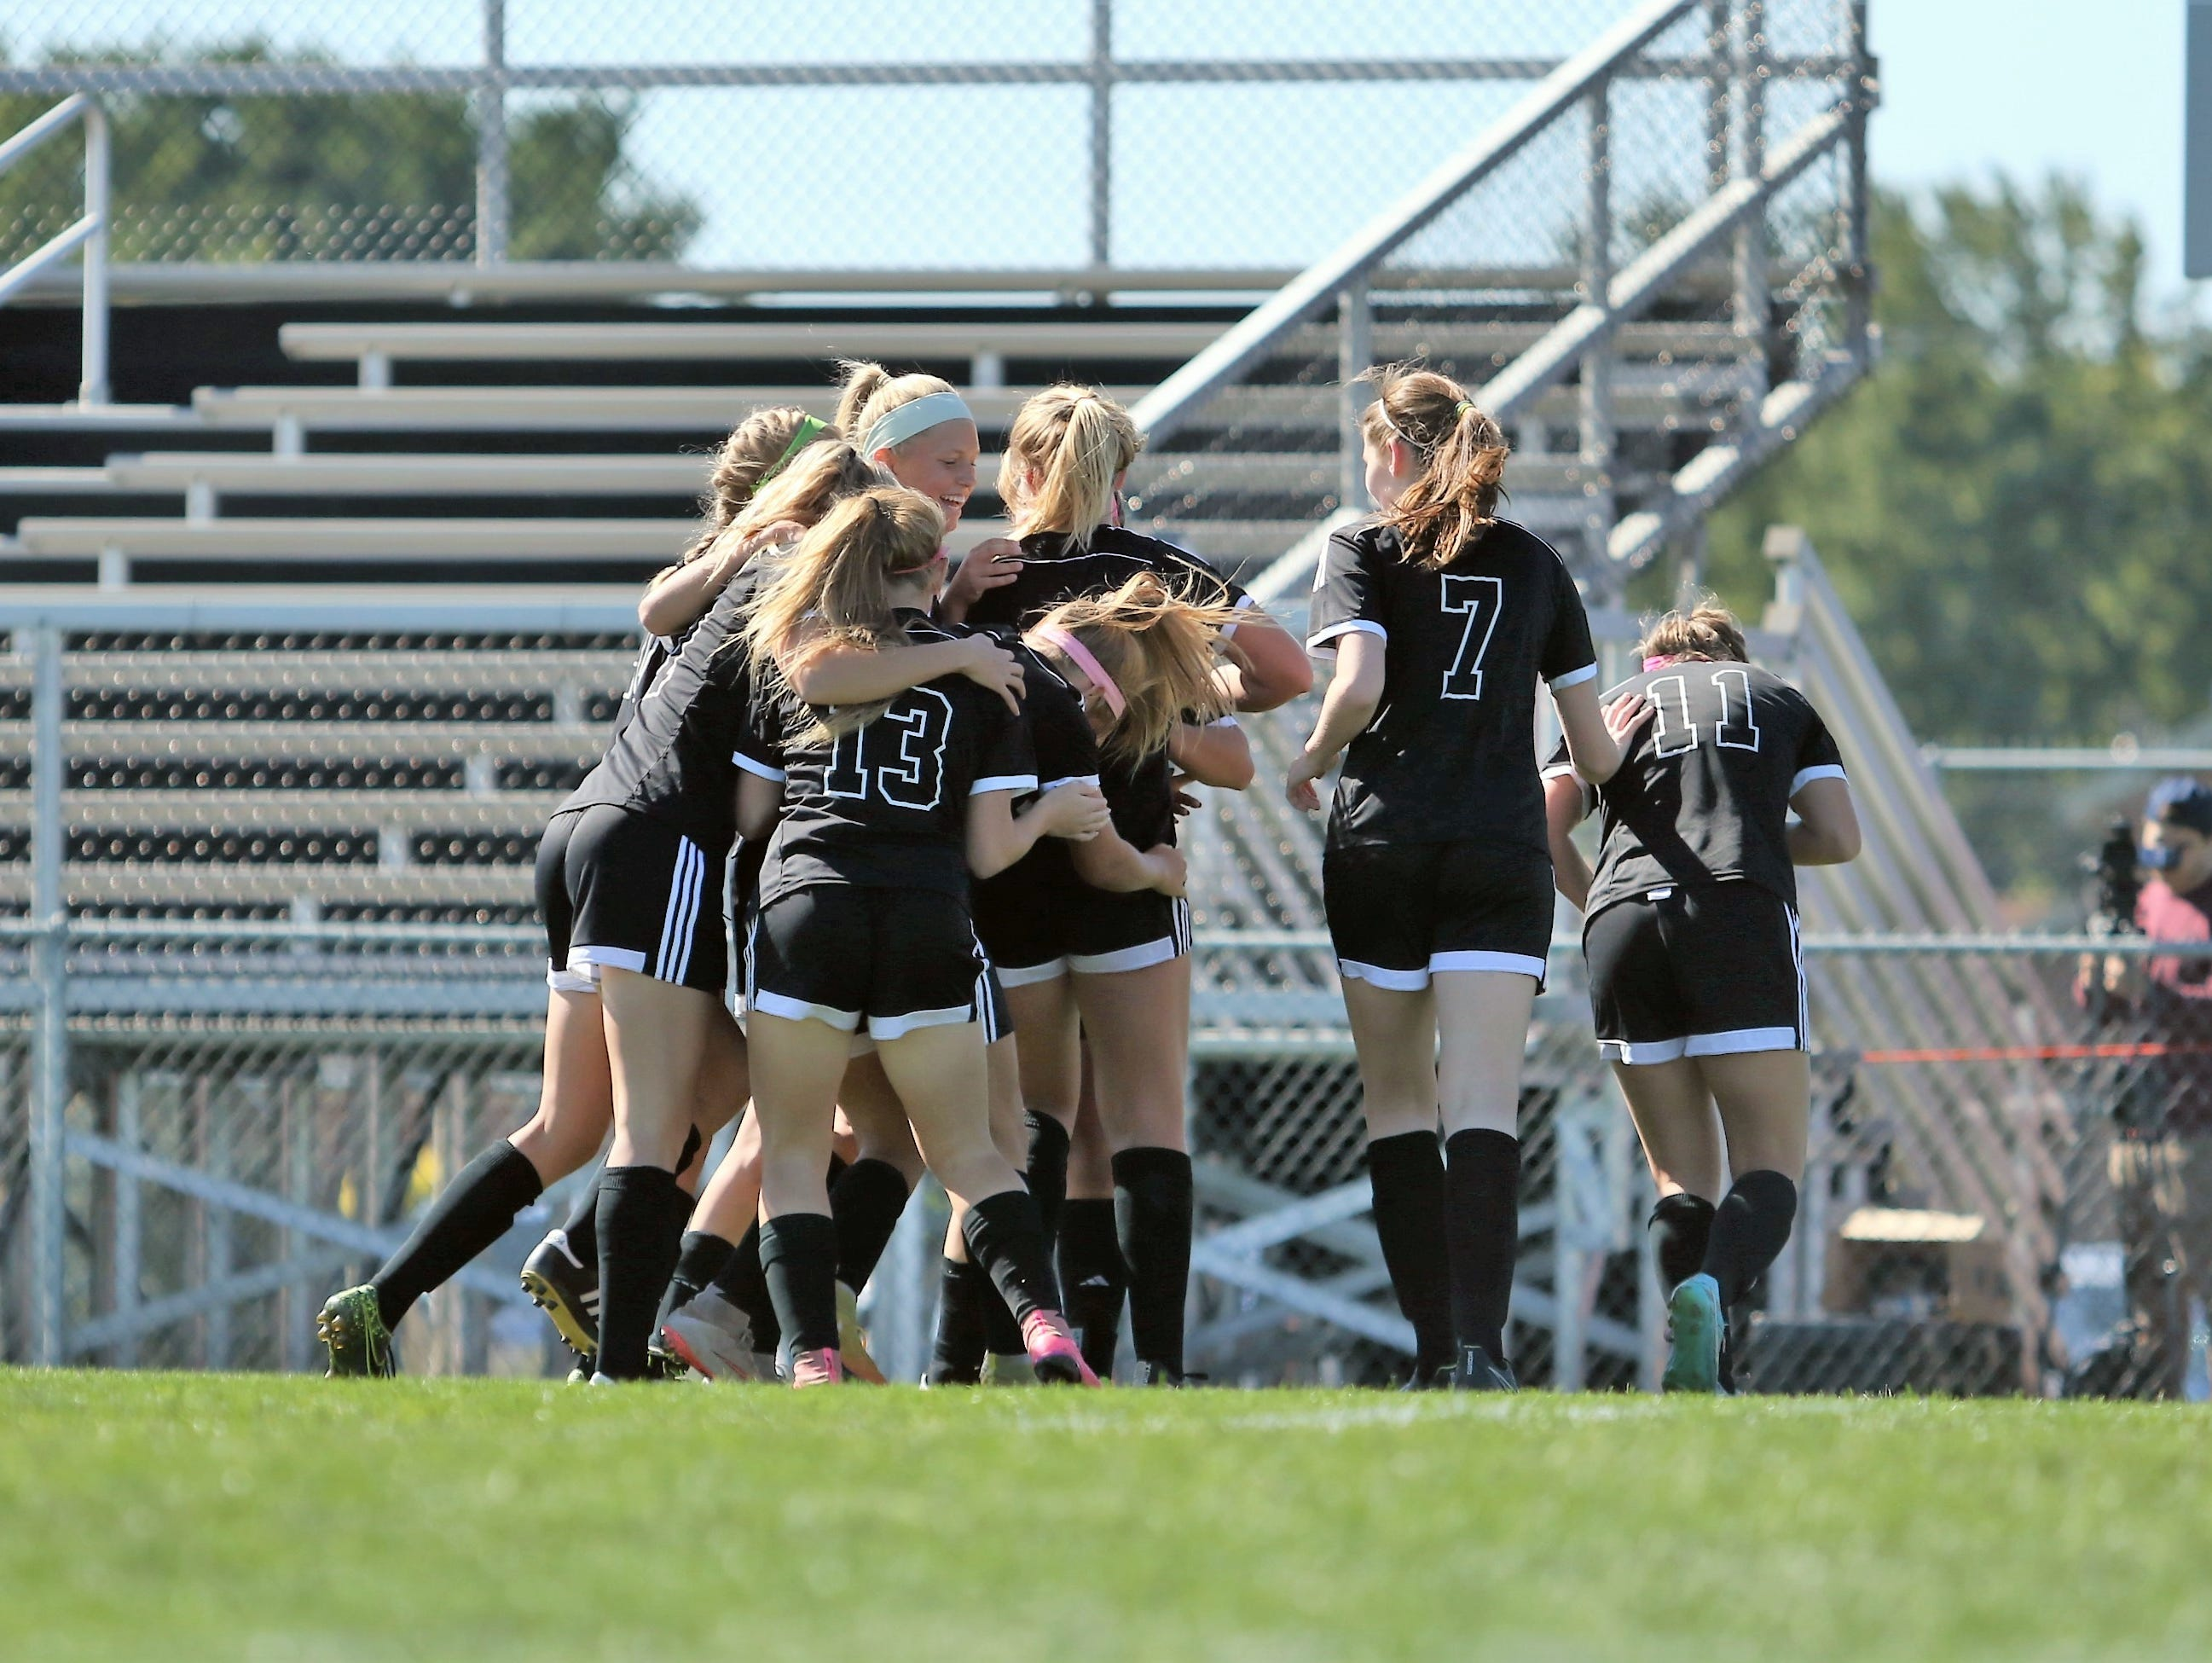 Noblesville players celebrate after a goal in their win over Hamilton Southeastern Saturday.